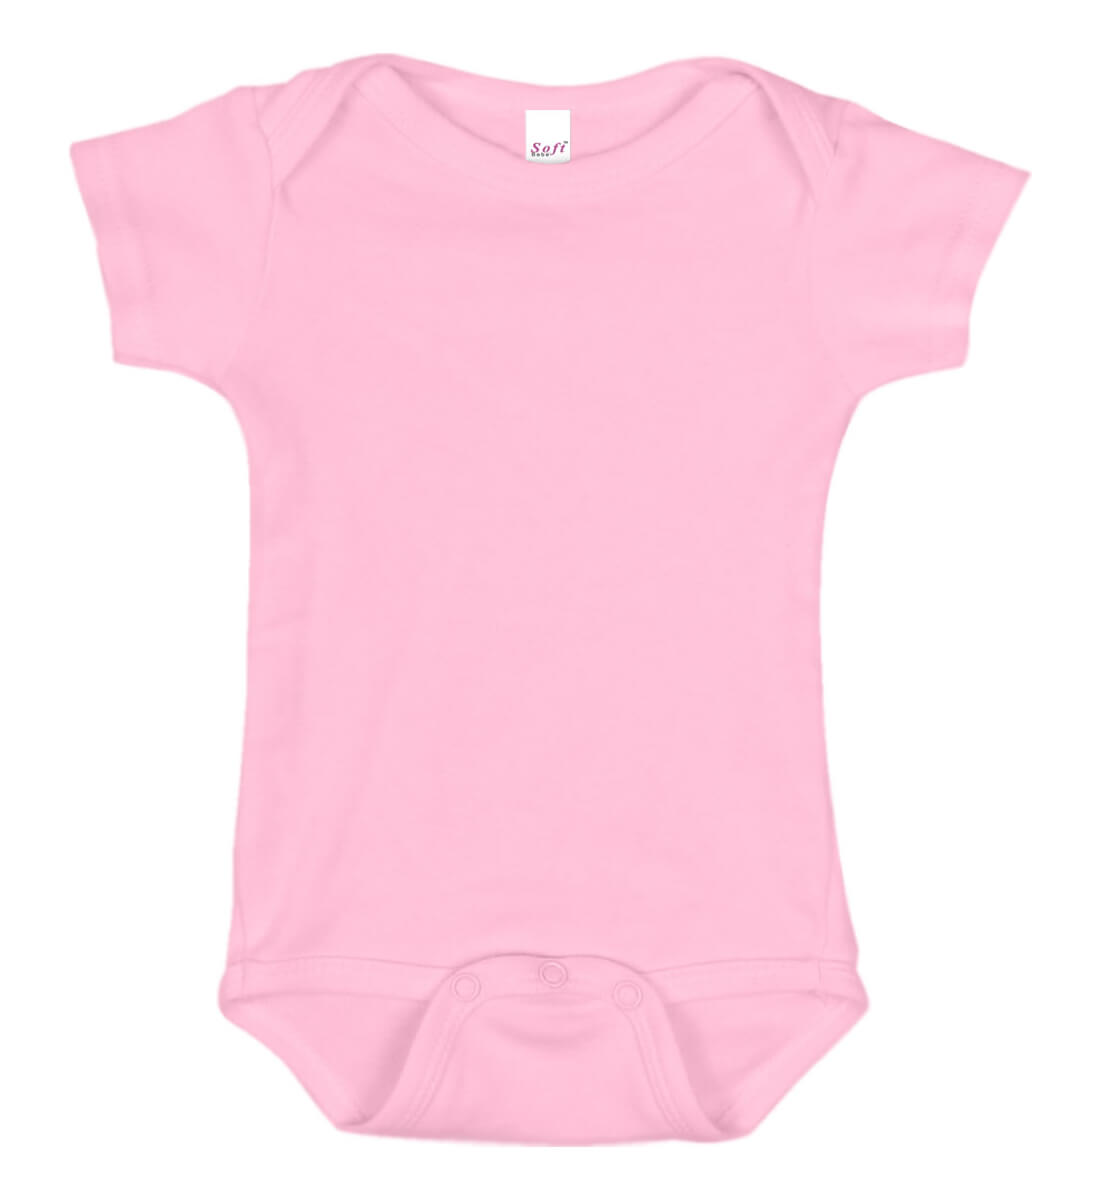 2963a34ef8d9 Wholesale Blank Onesies - Short Sleeve